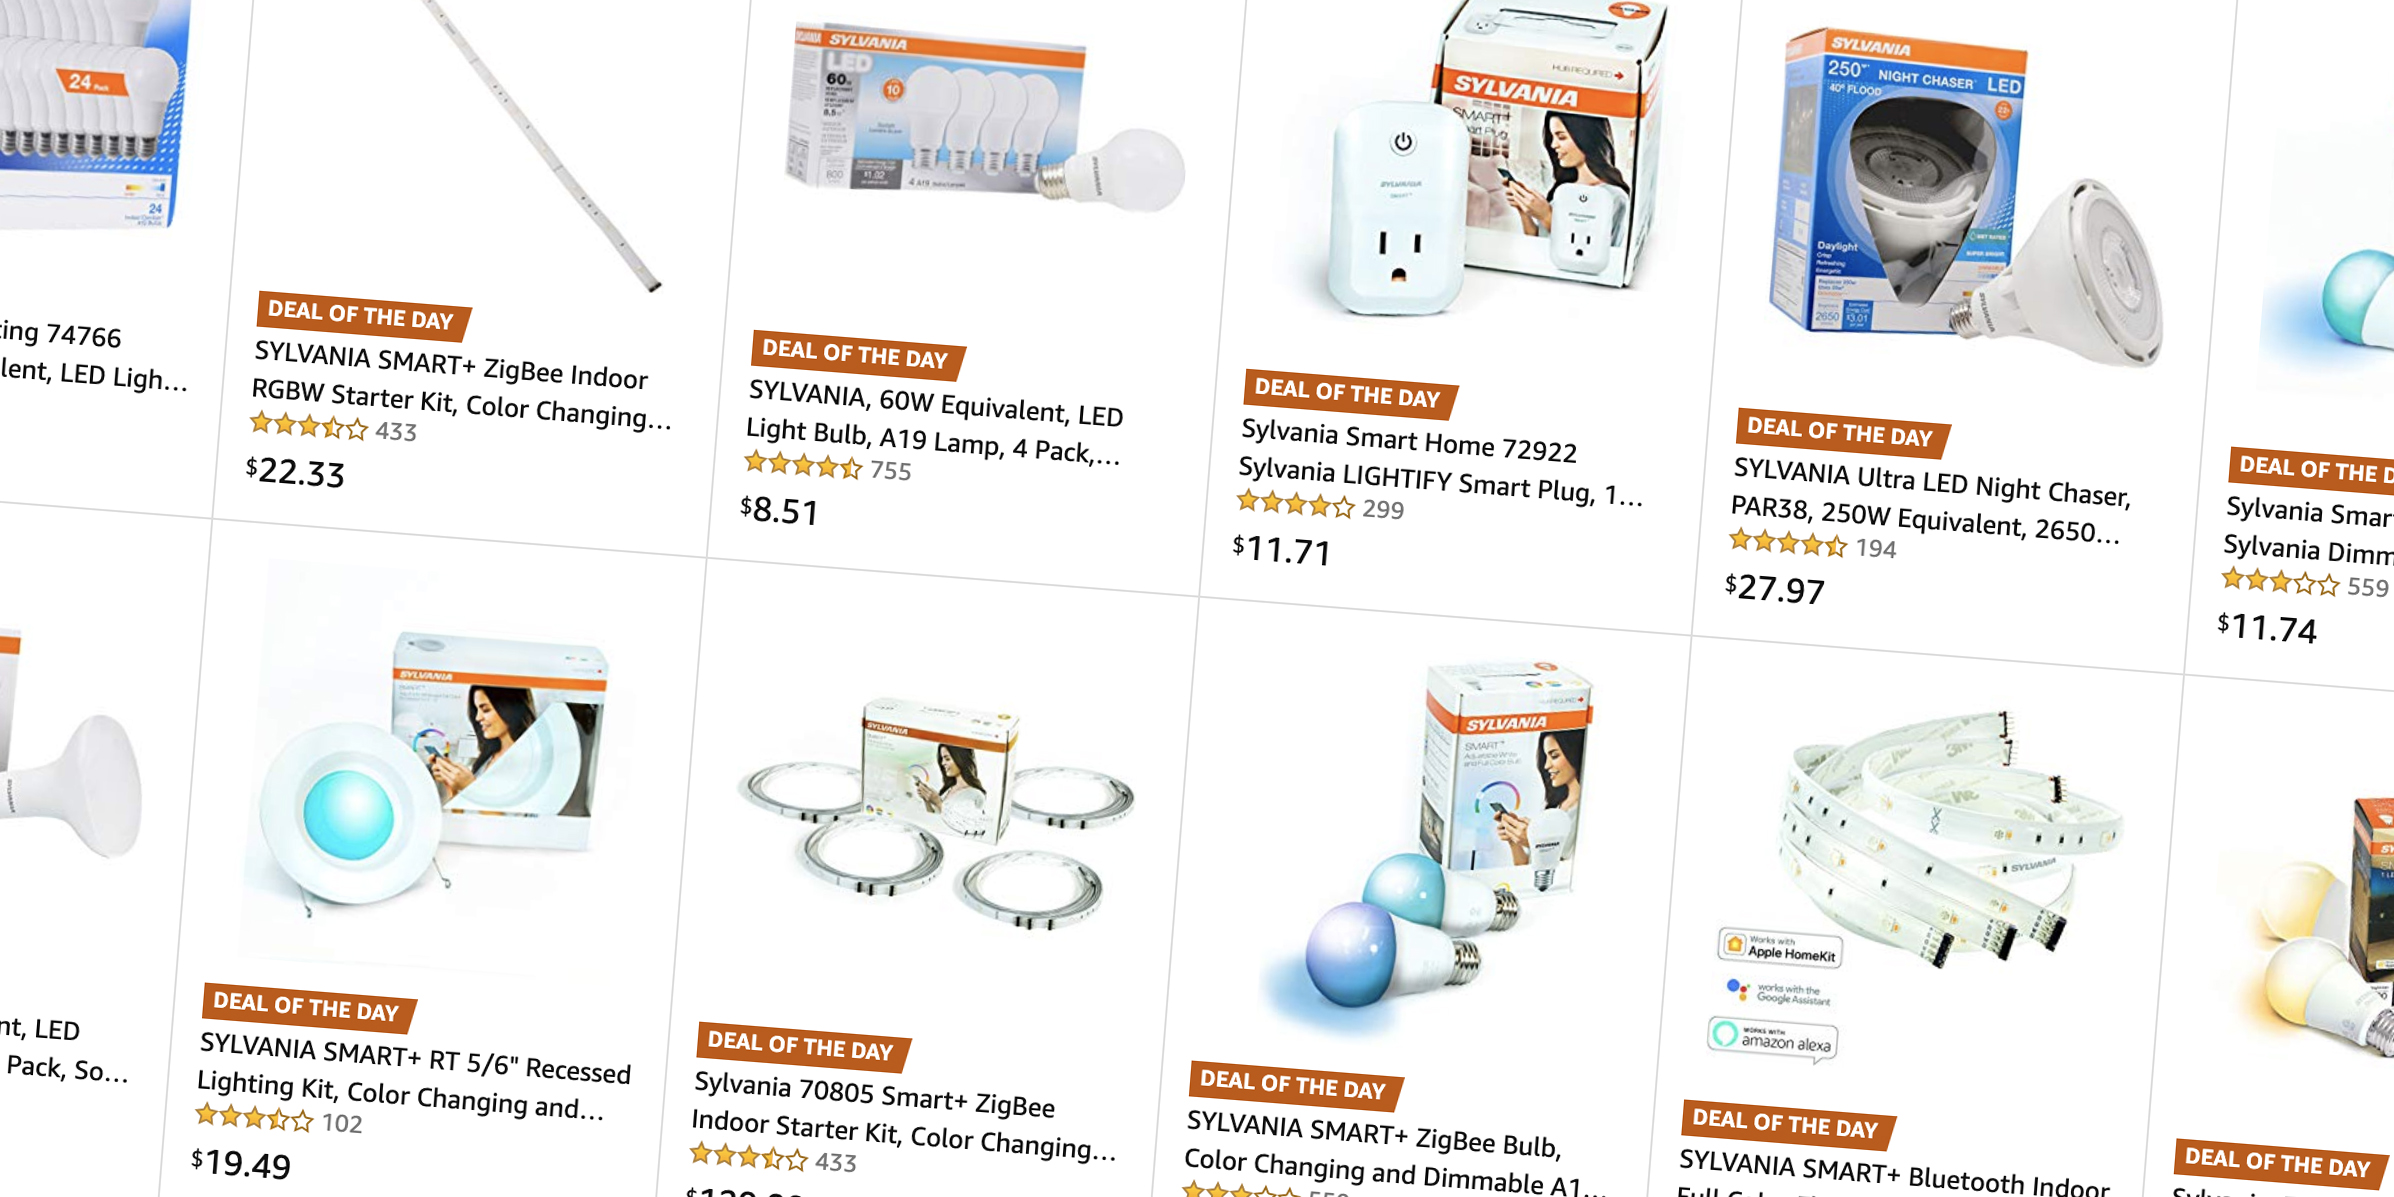 Get rid of your incandescent light bulbs, Sylvania HomeKit and LEDs 70% off in Amazon's Gold Box